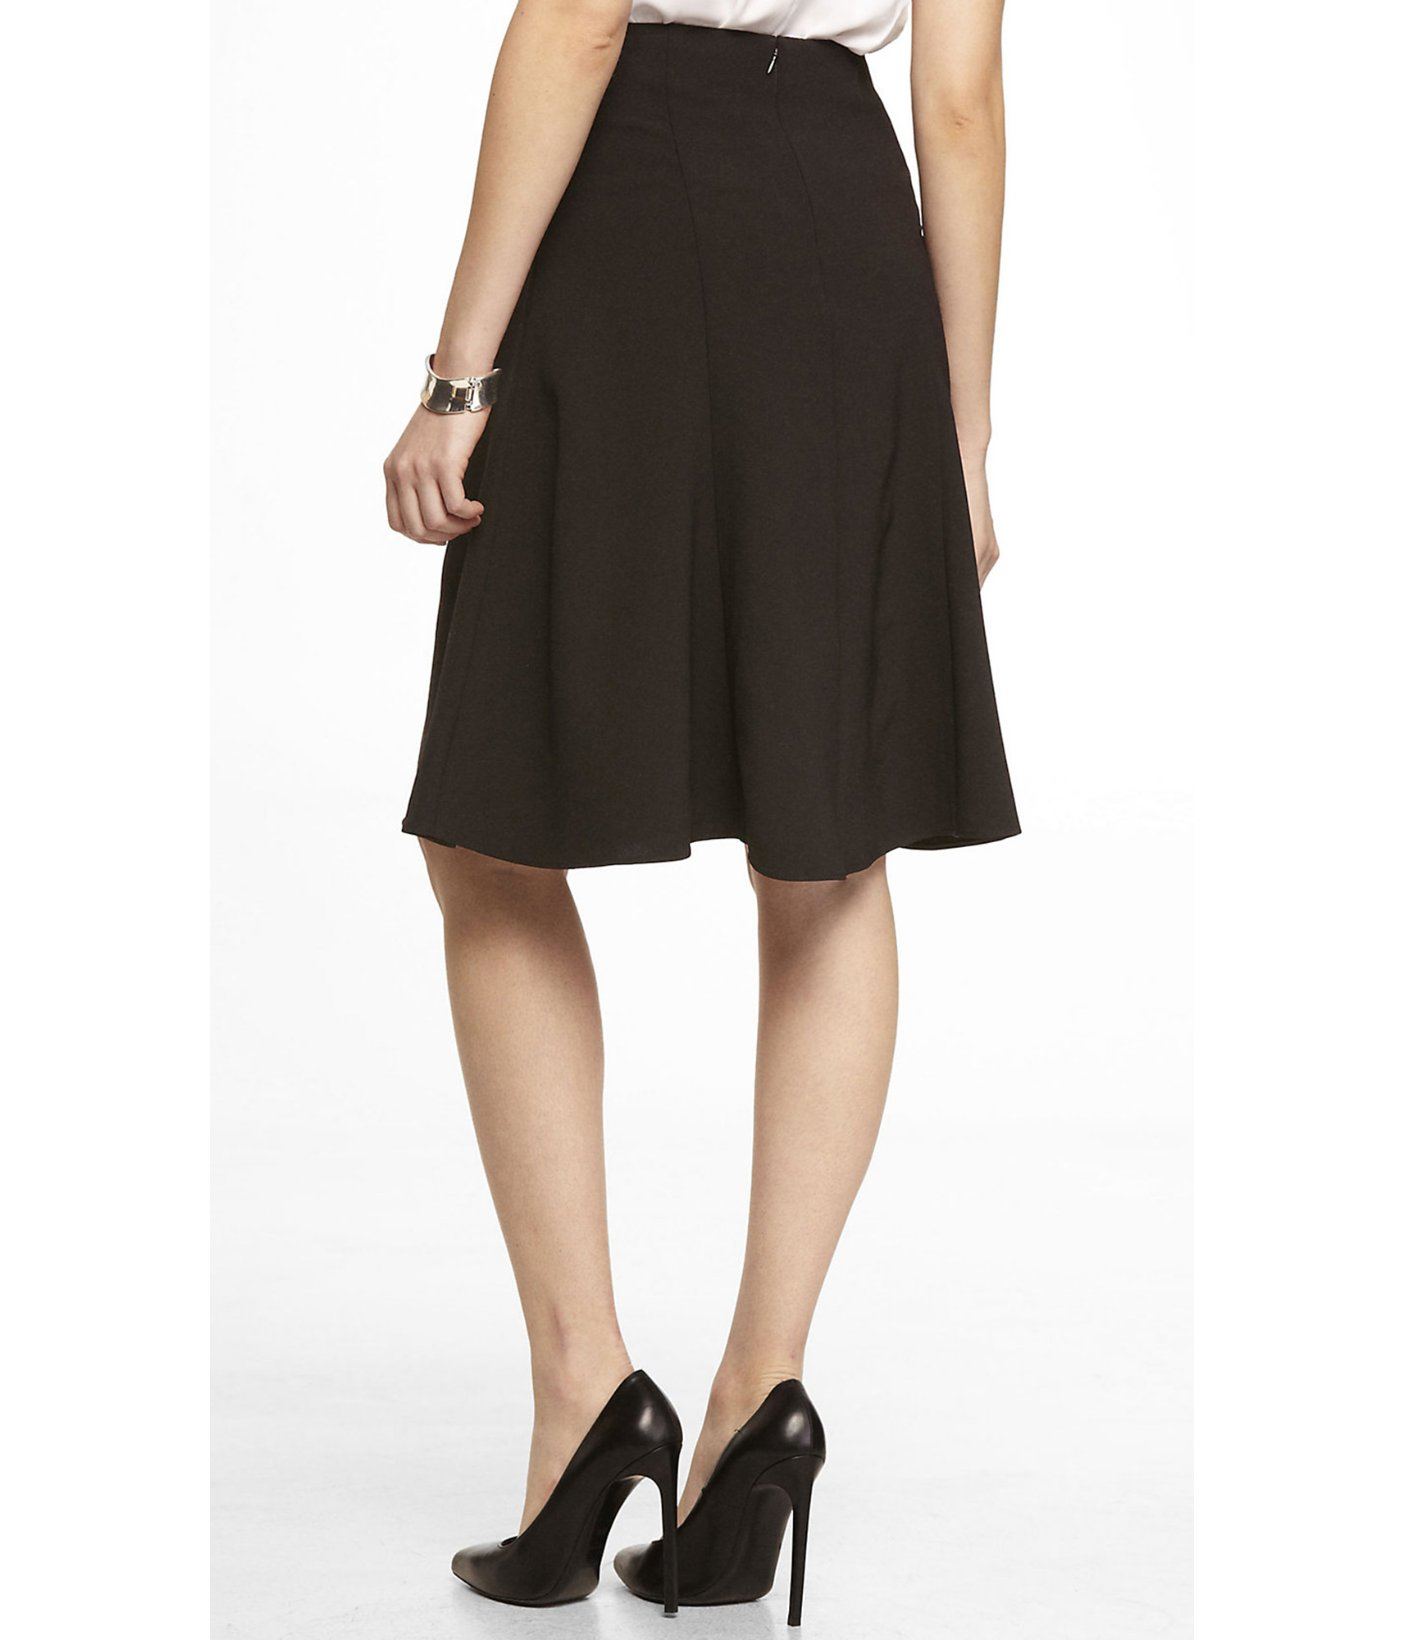 Black Fit And Flare Skirt - Skirts